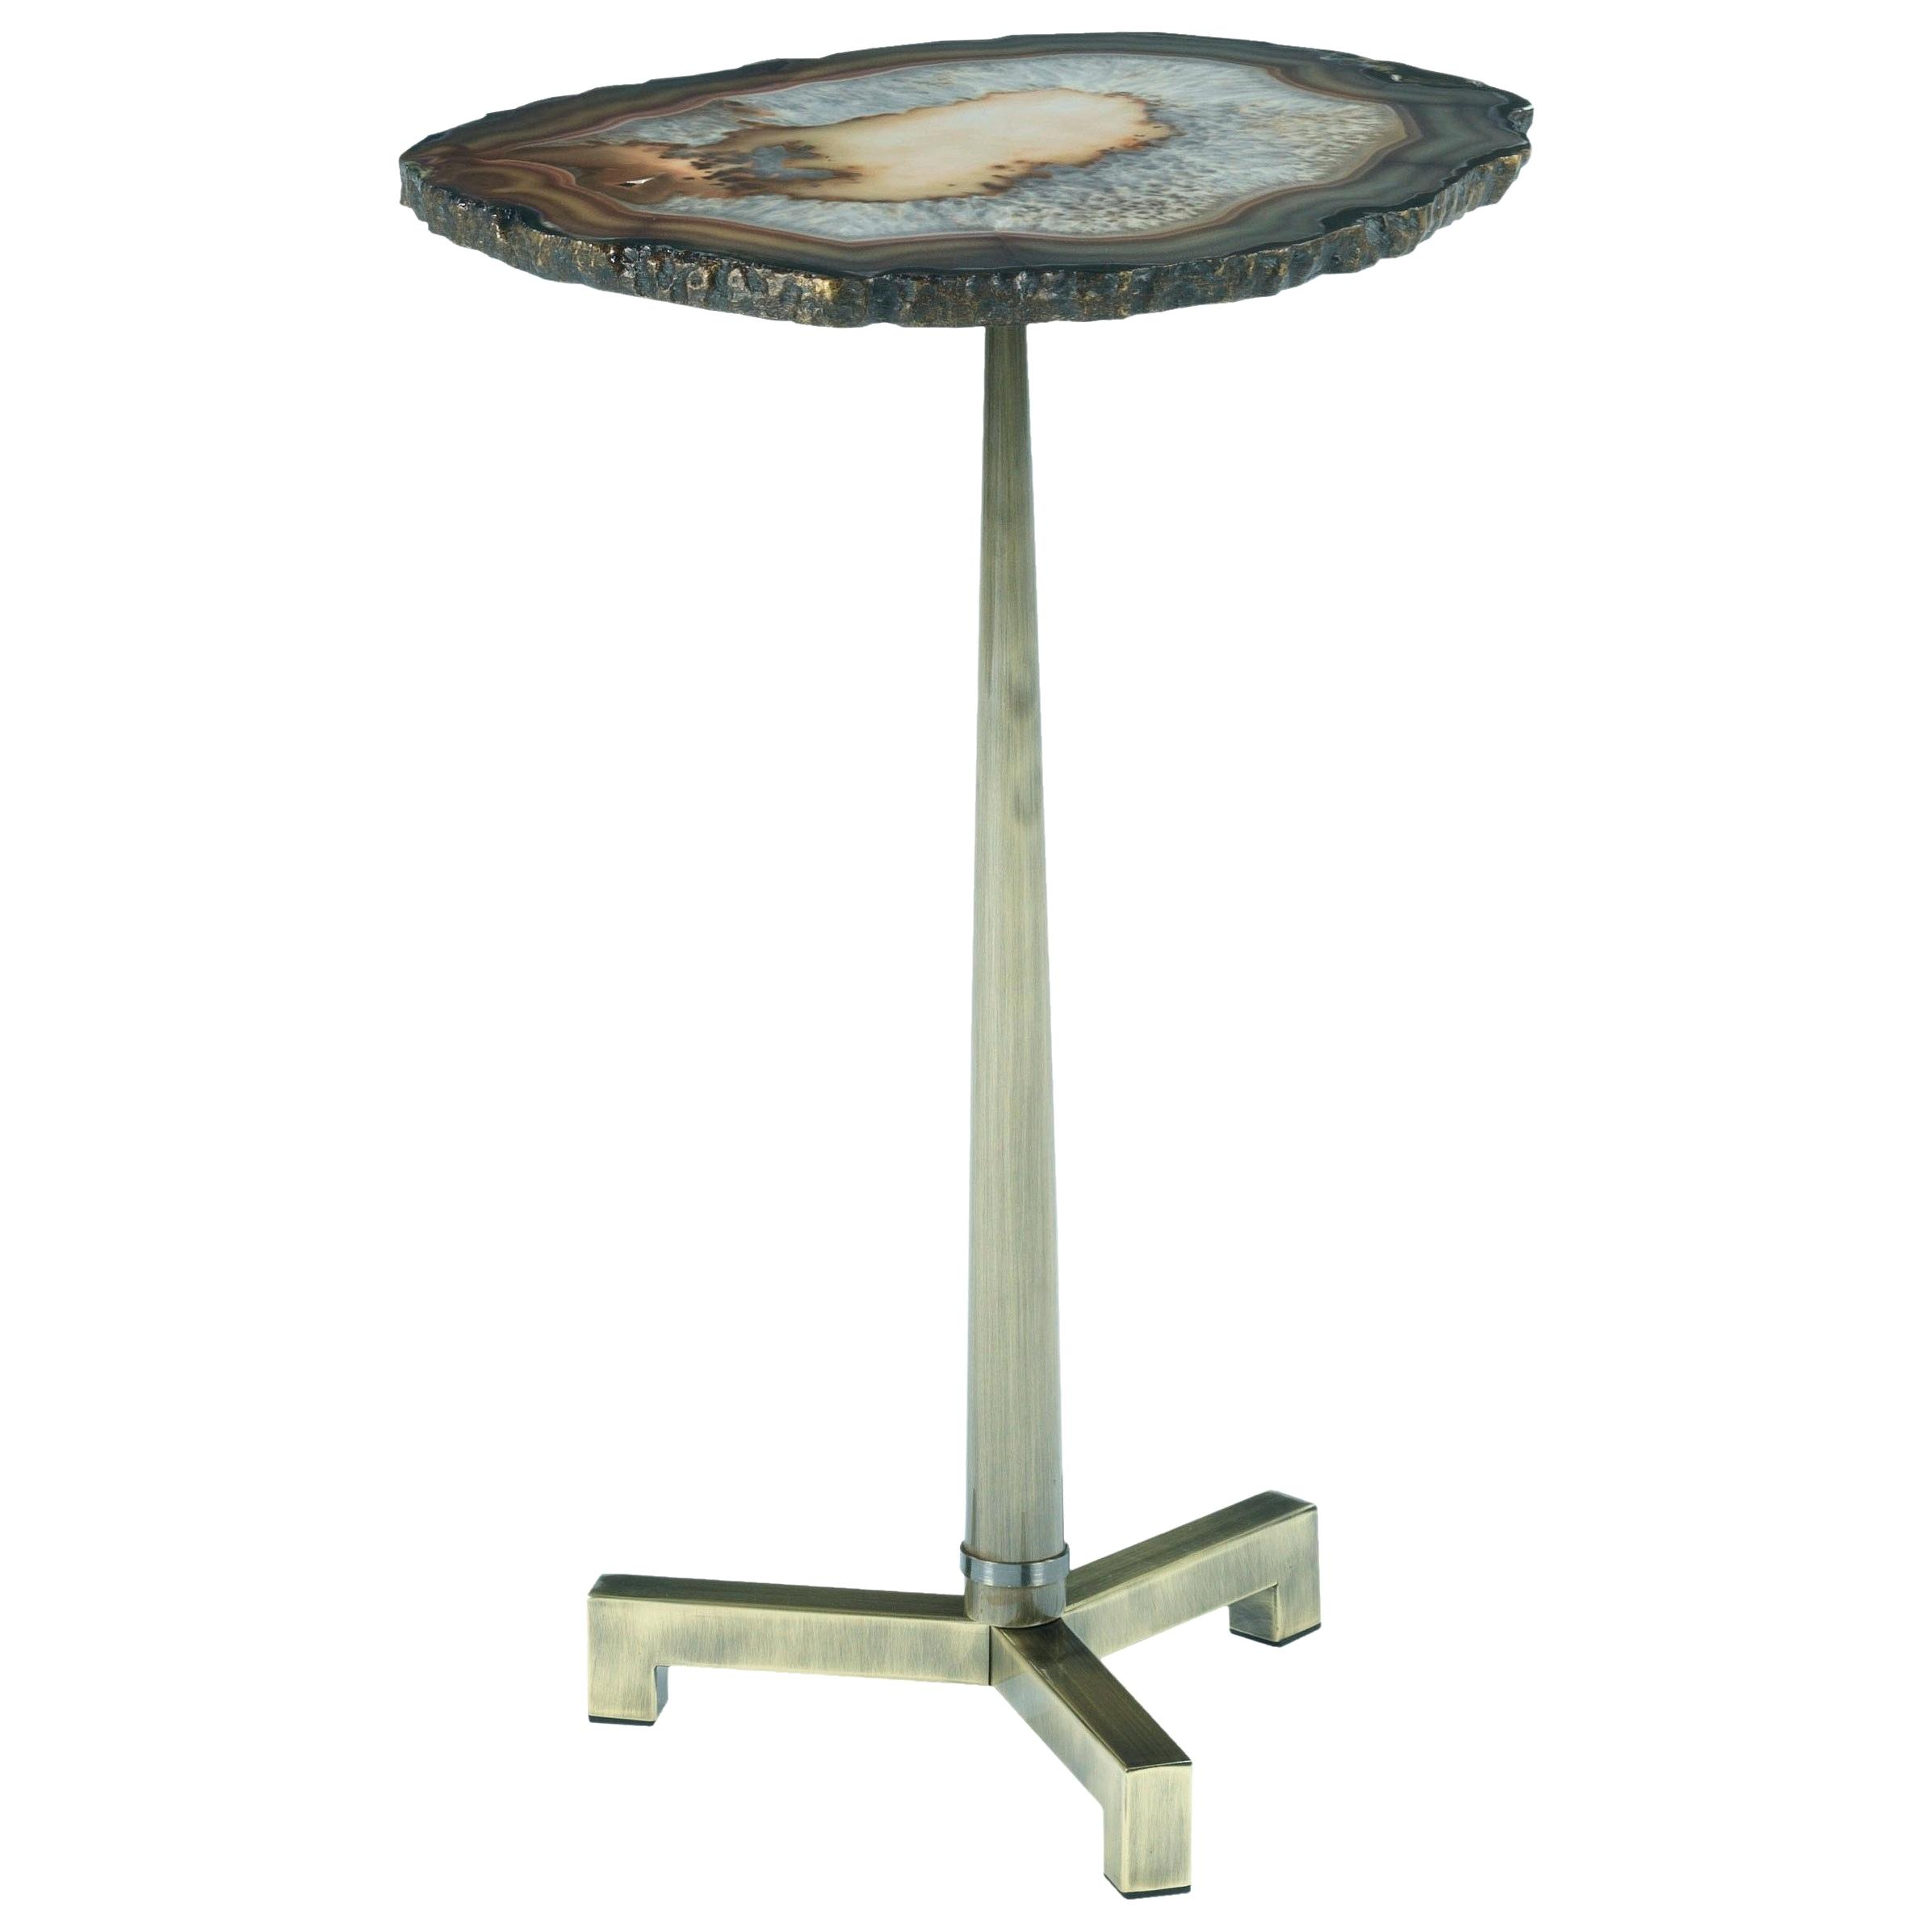 agate accent table glass burmatravel end with steel base purple nate berkus inch tall kitchen decor ideas mudroom storage units distressed gray bistro set unfinished legs mini